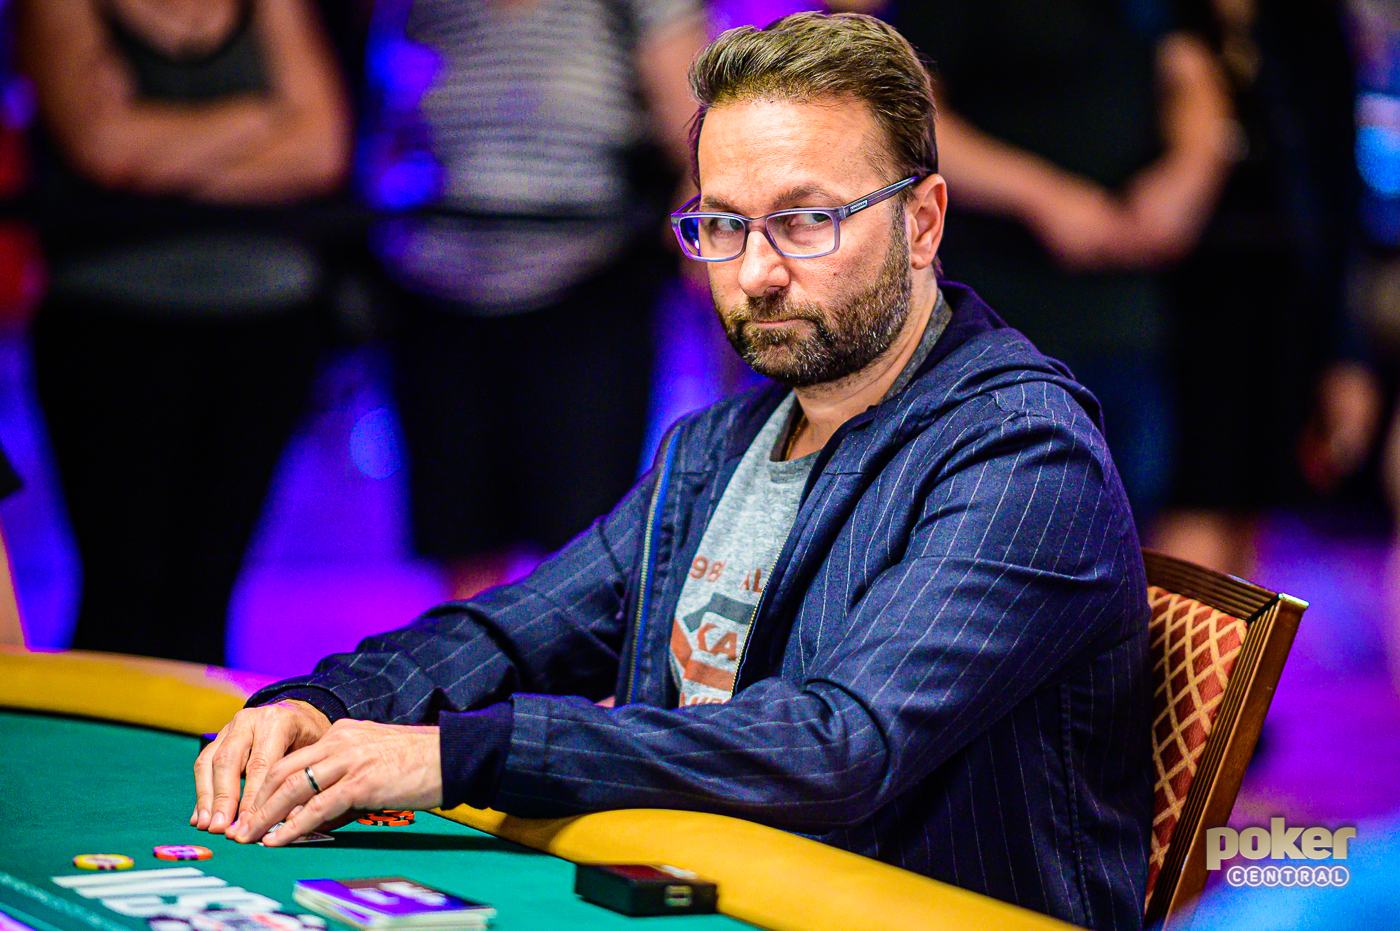 Daniel Negreanu has put together another run to give him a chance to break an 11-year Las Vegas bracelet drought!